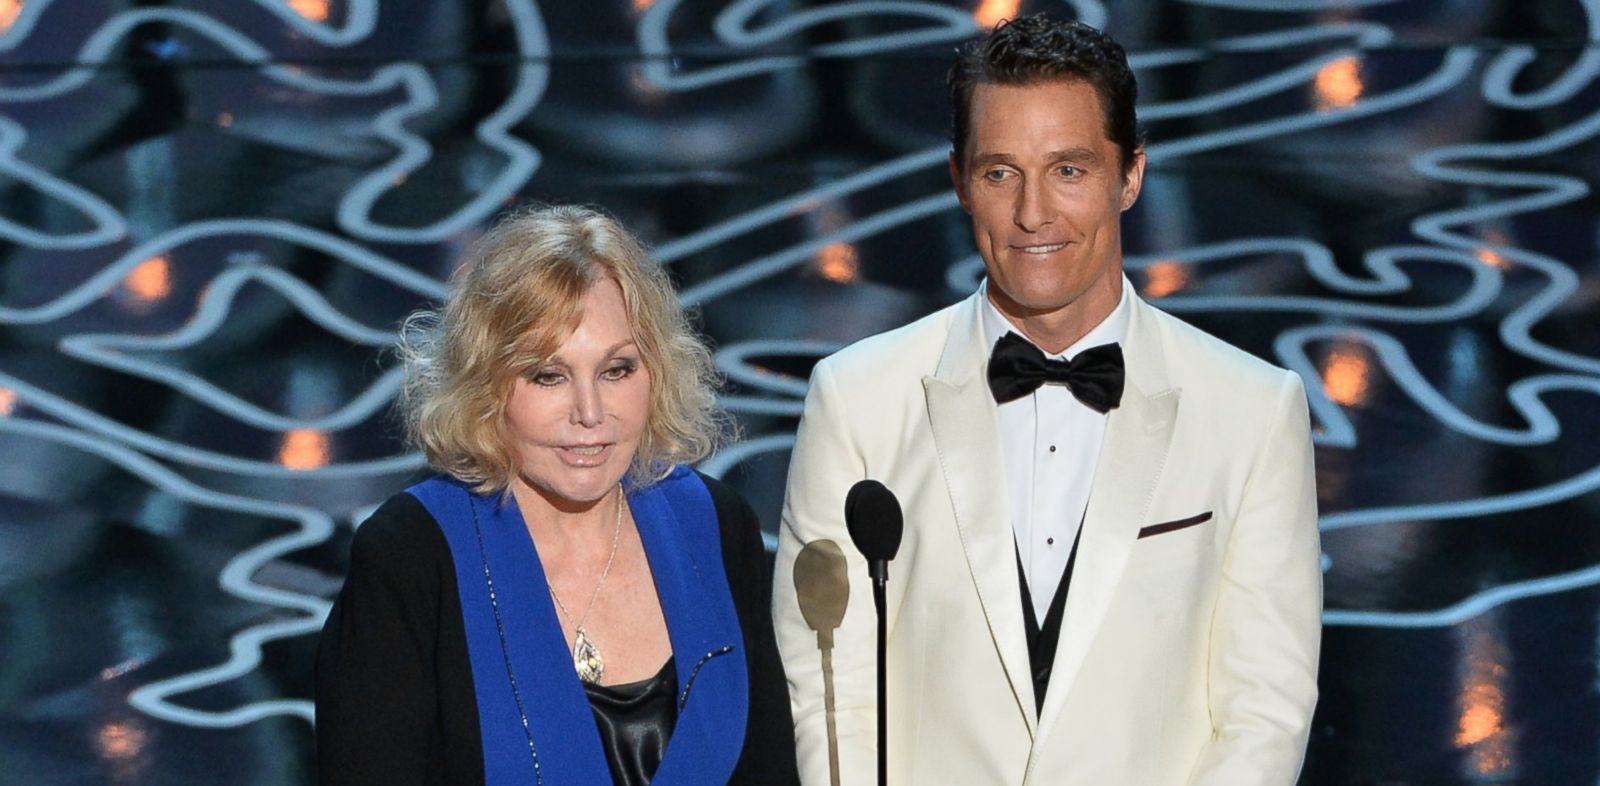 PHOTO: Kim Novak, left, and Matthew McConaughey, right, speak onstage during the Oscars on Mar. 2, 2014 in Hollywood, Calif.